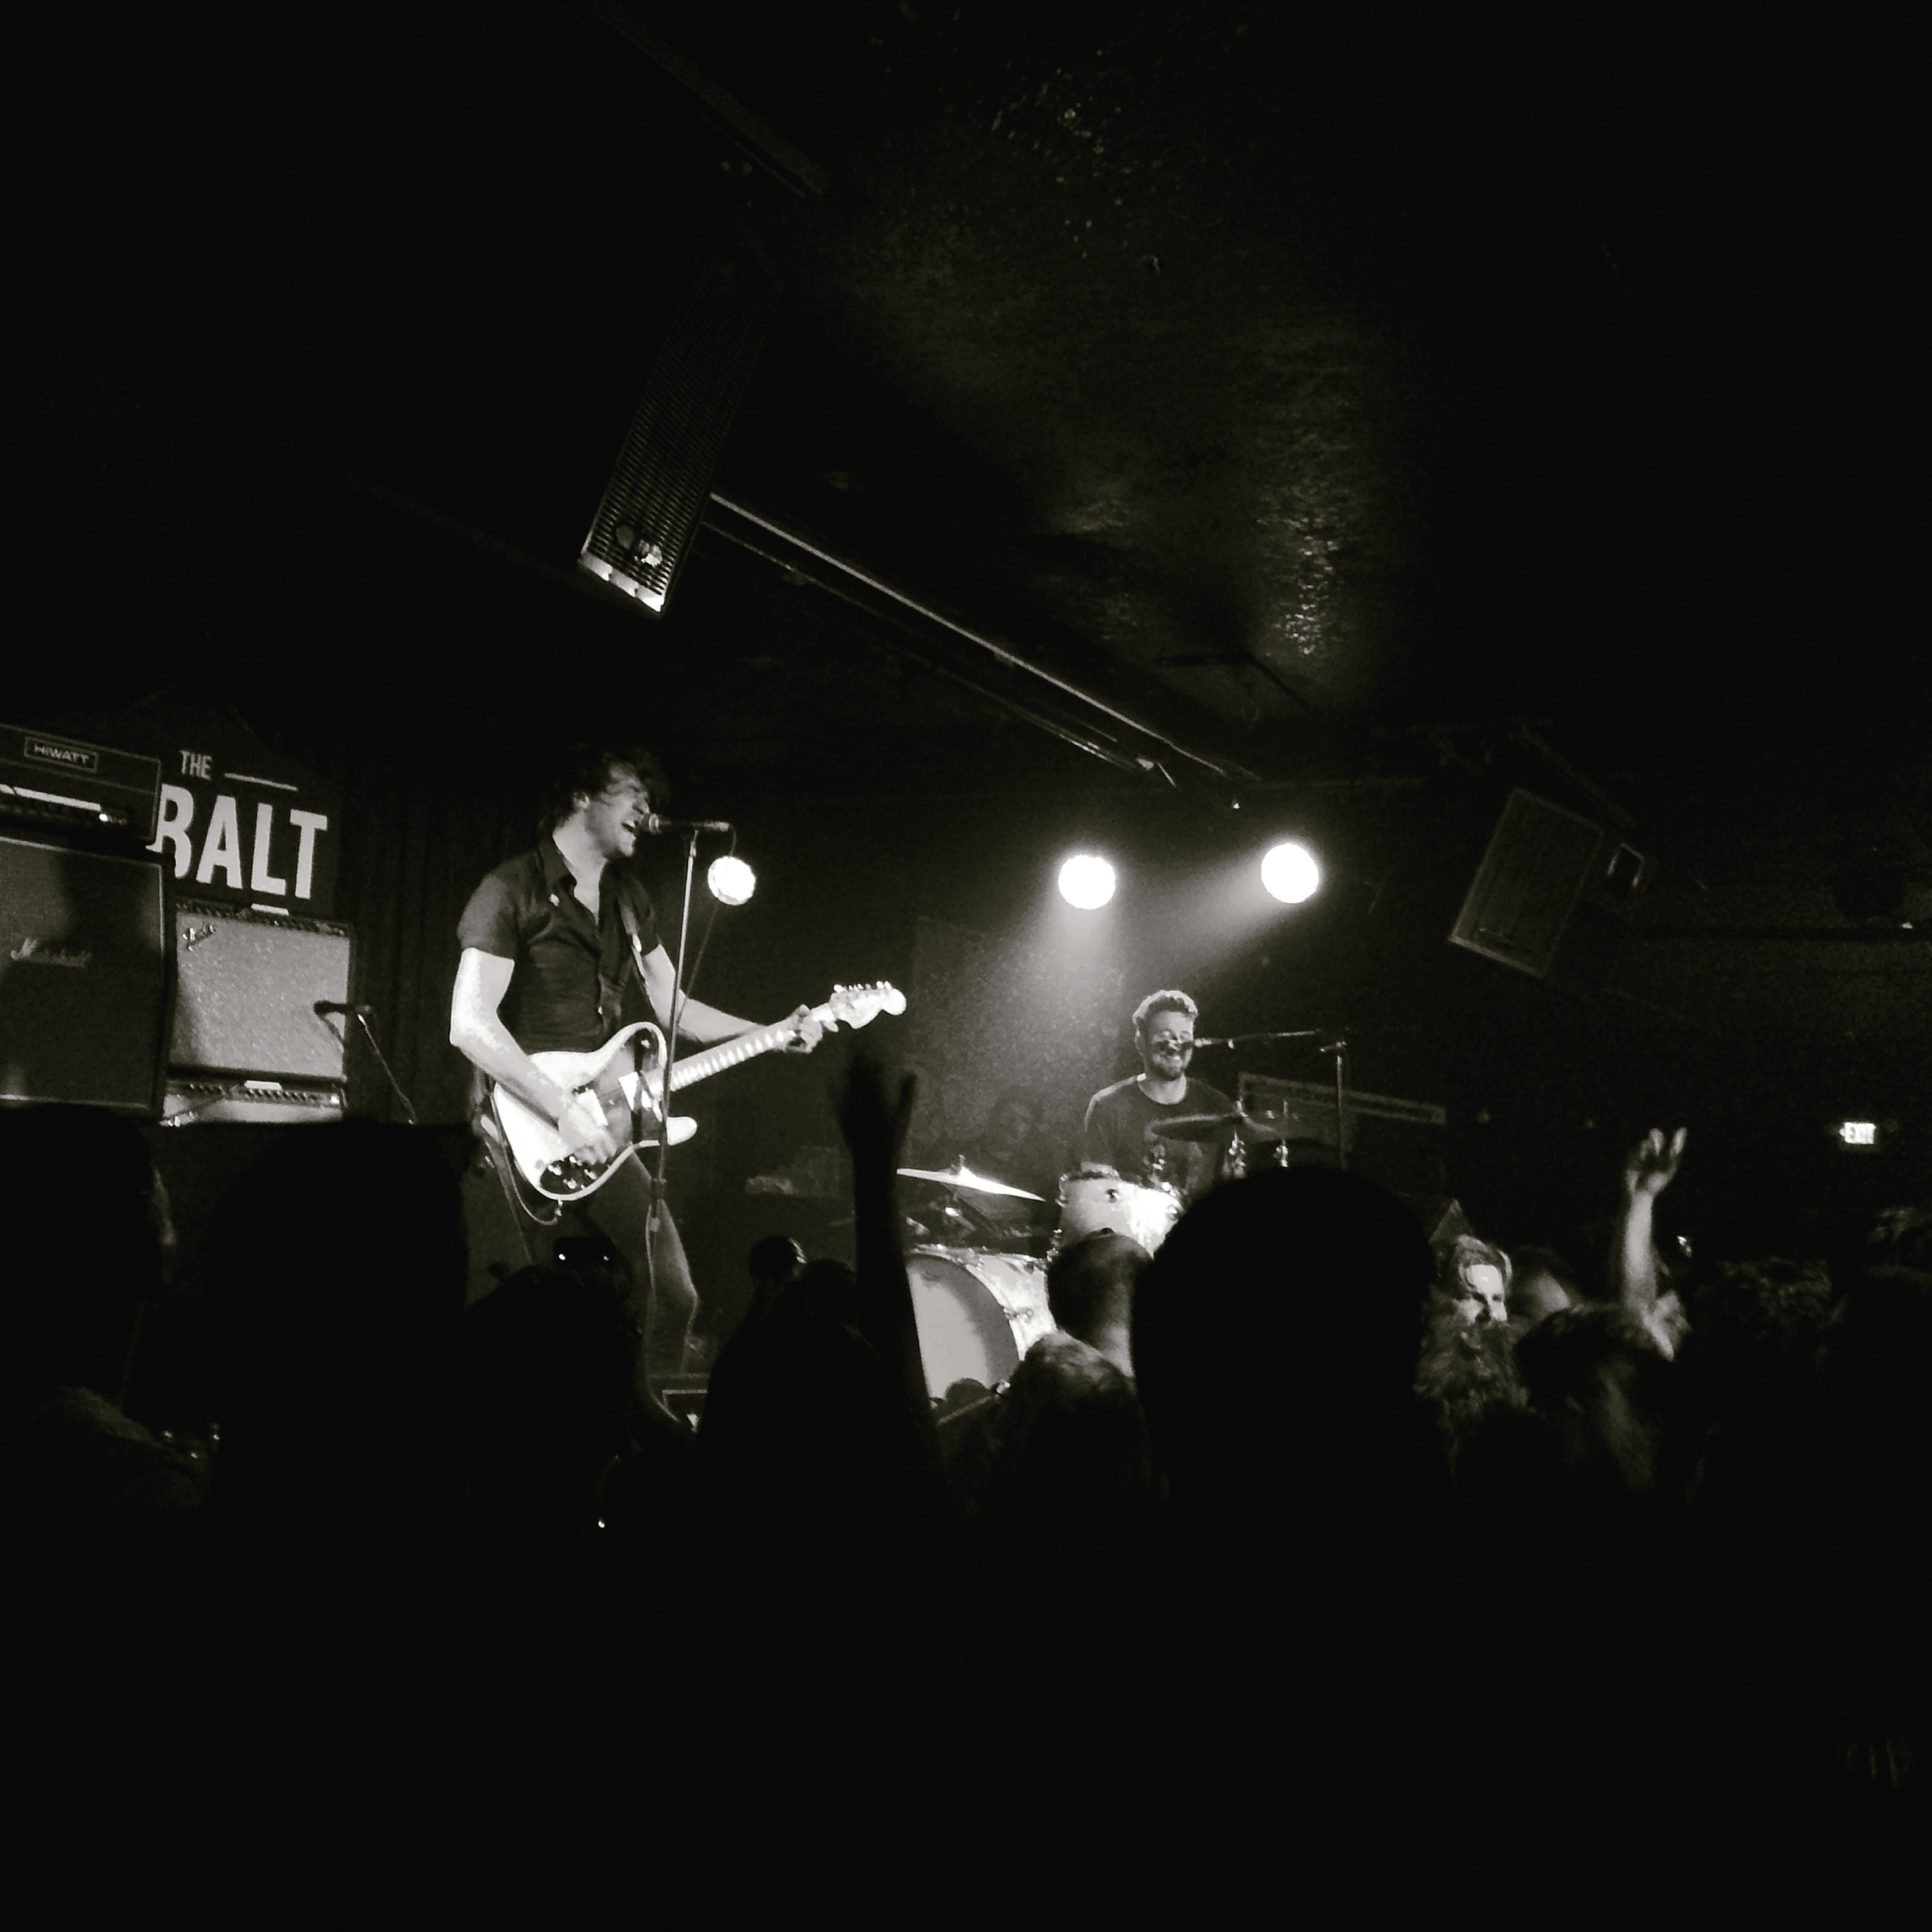 Japandroids live: Steve Barmash reviews Japandroids' show at the Cobalt in Vancouver, BC.